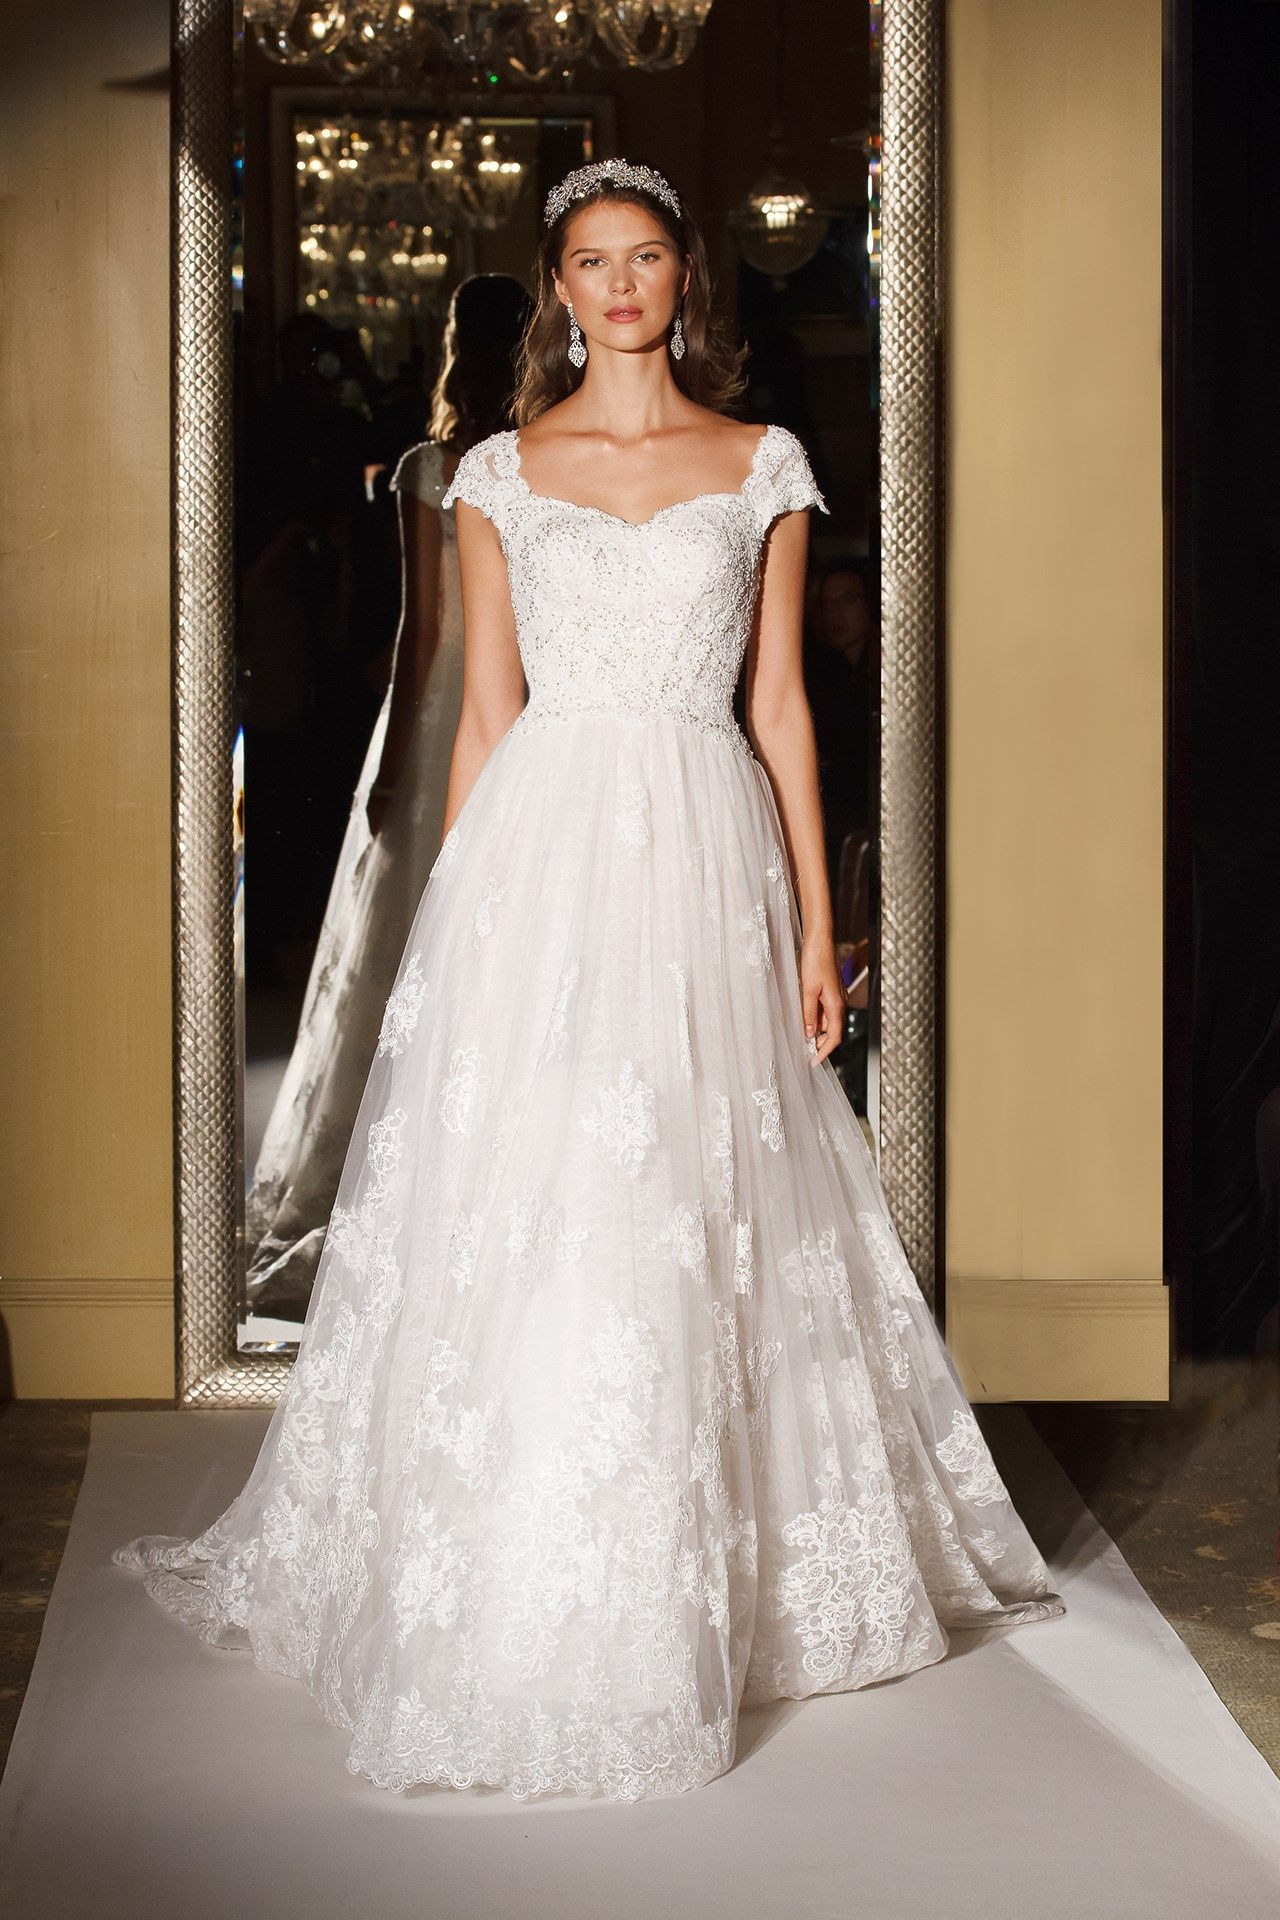 84b90a75728 Oleg Cassini Wedding Dress from the Spring 2017 Collection